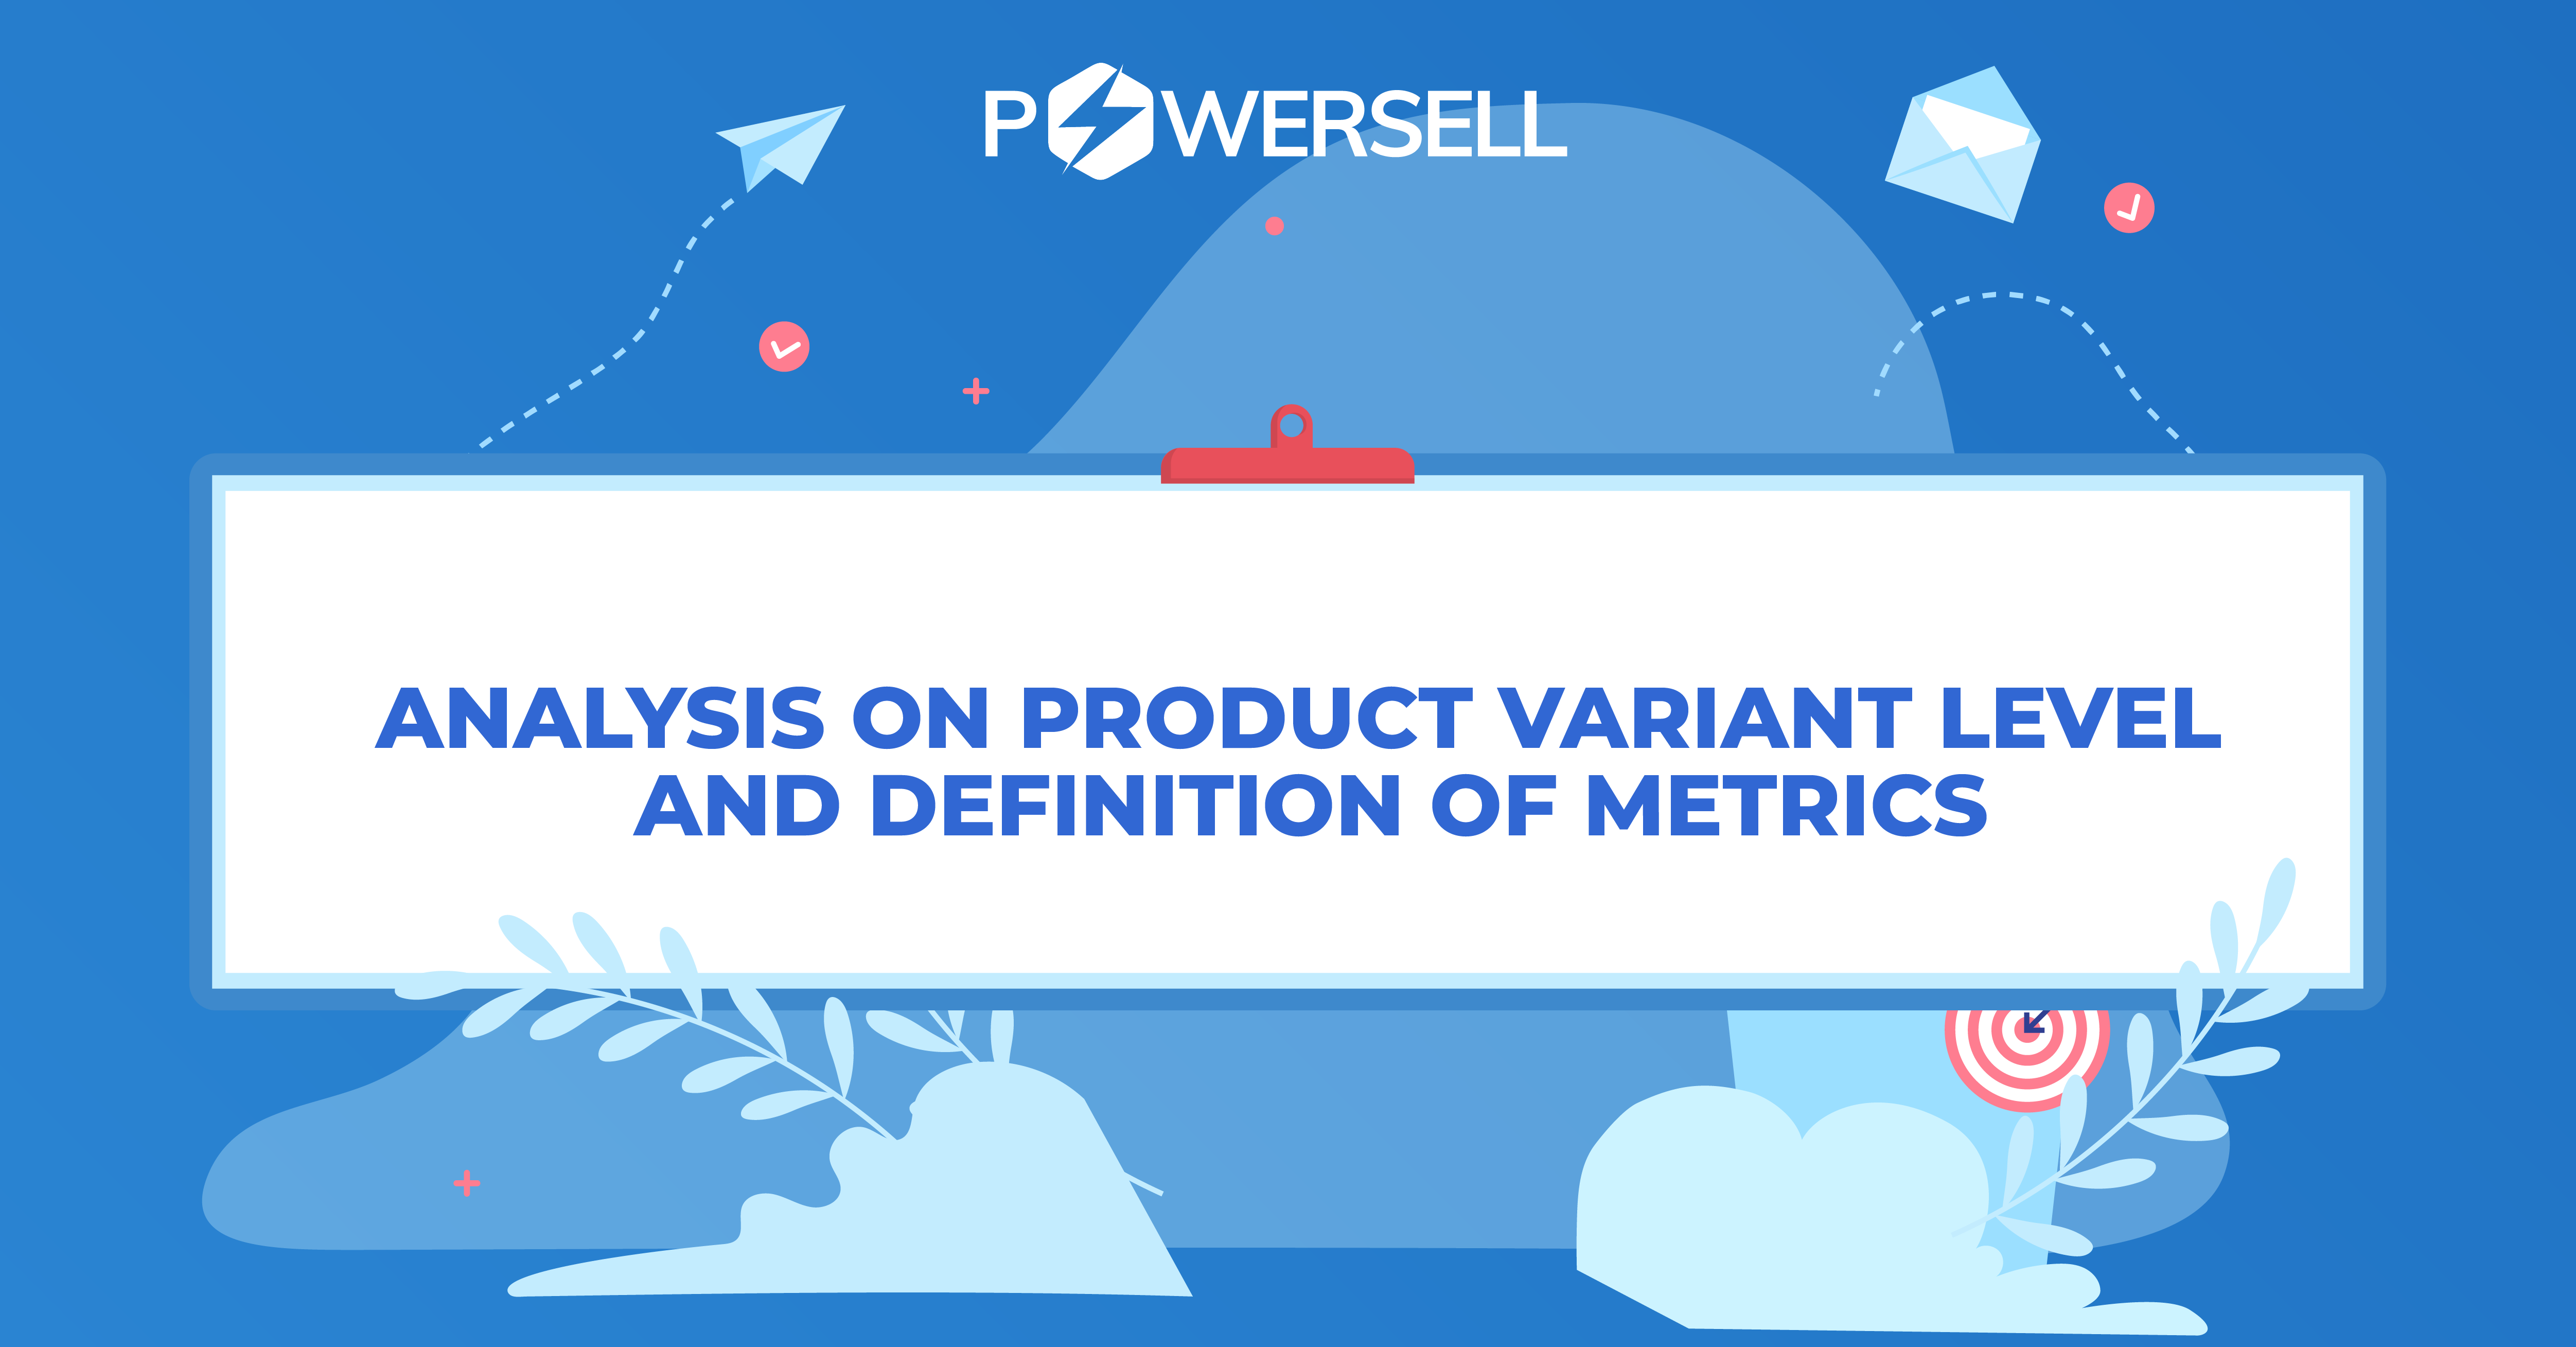 Analysis on product variant level and definition of metrics